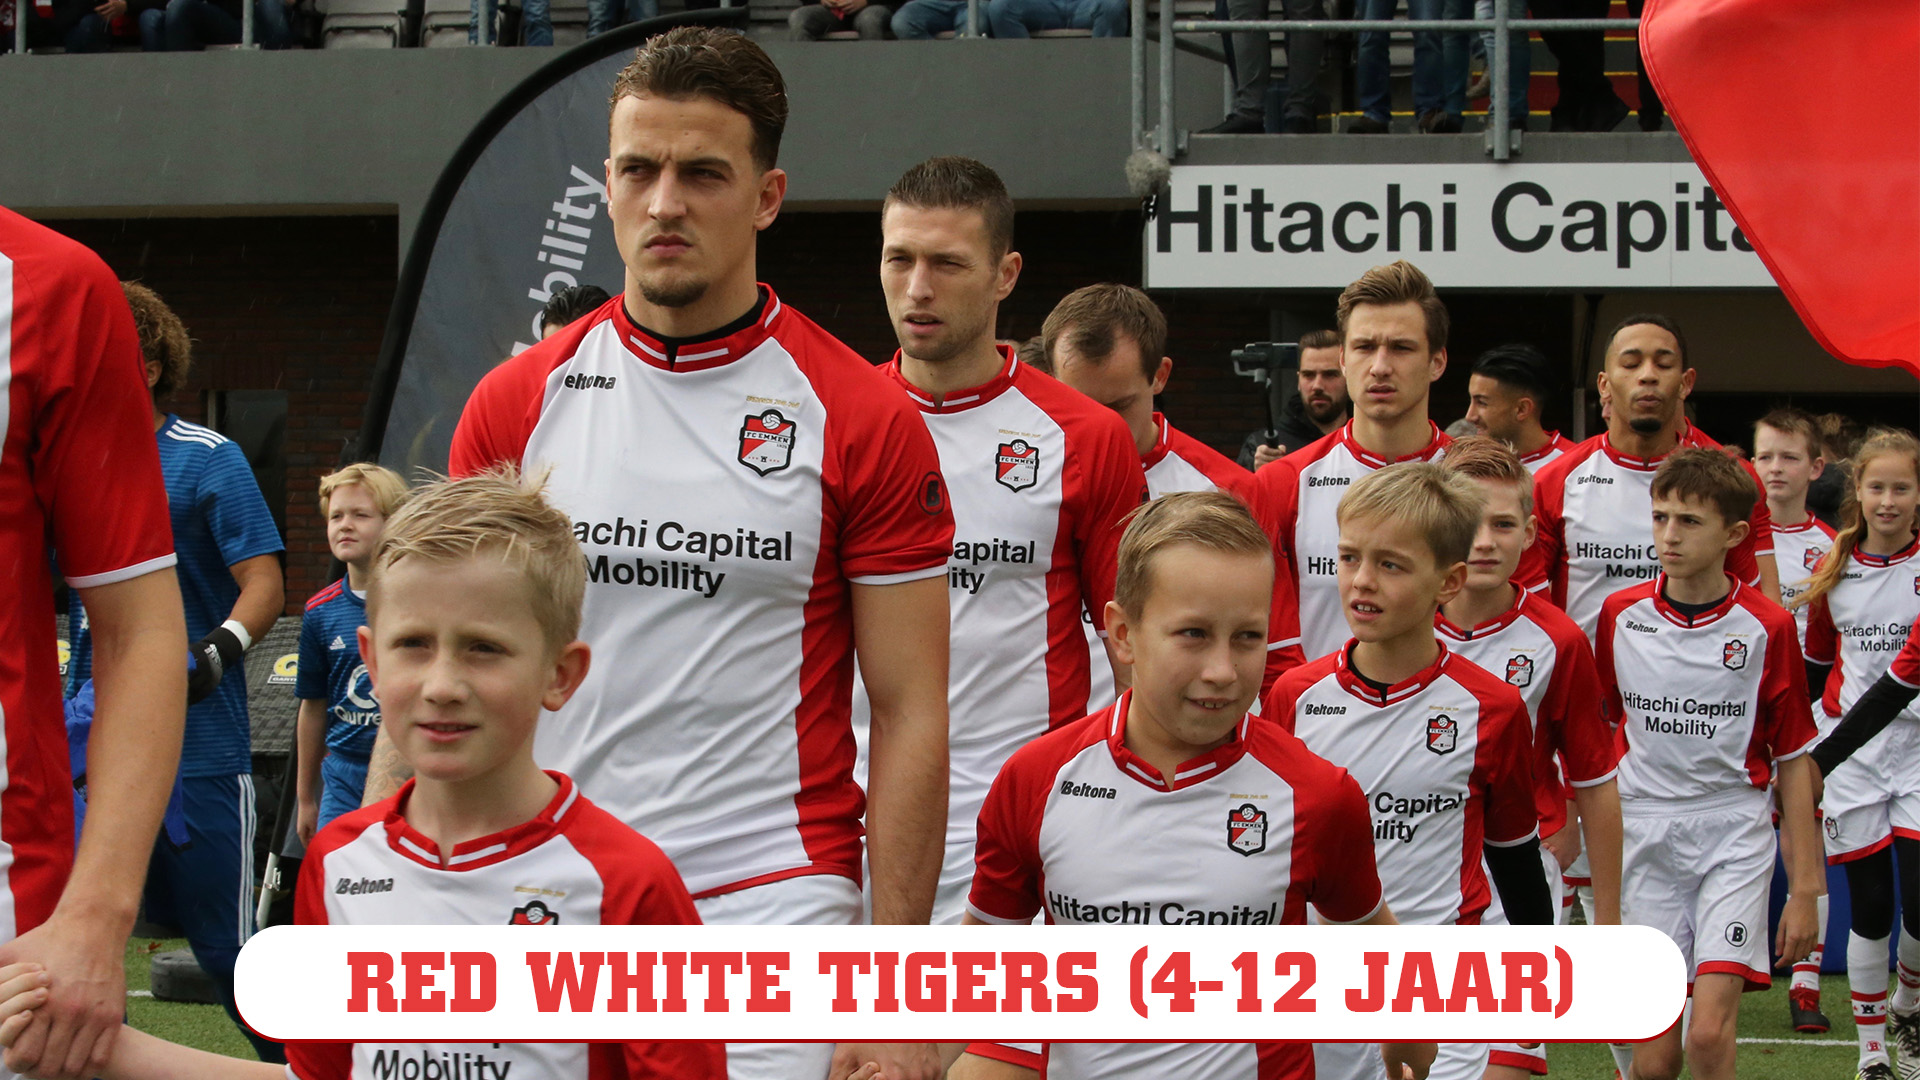 Red White Tigers image